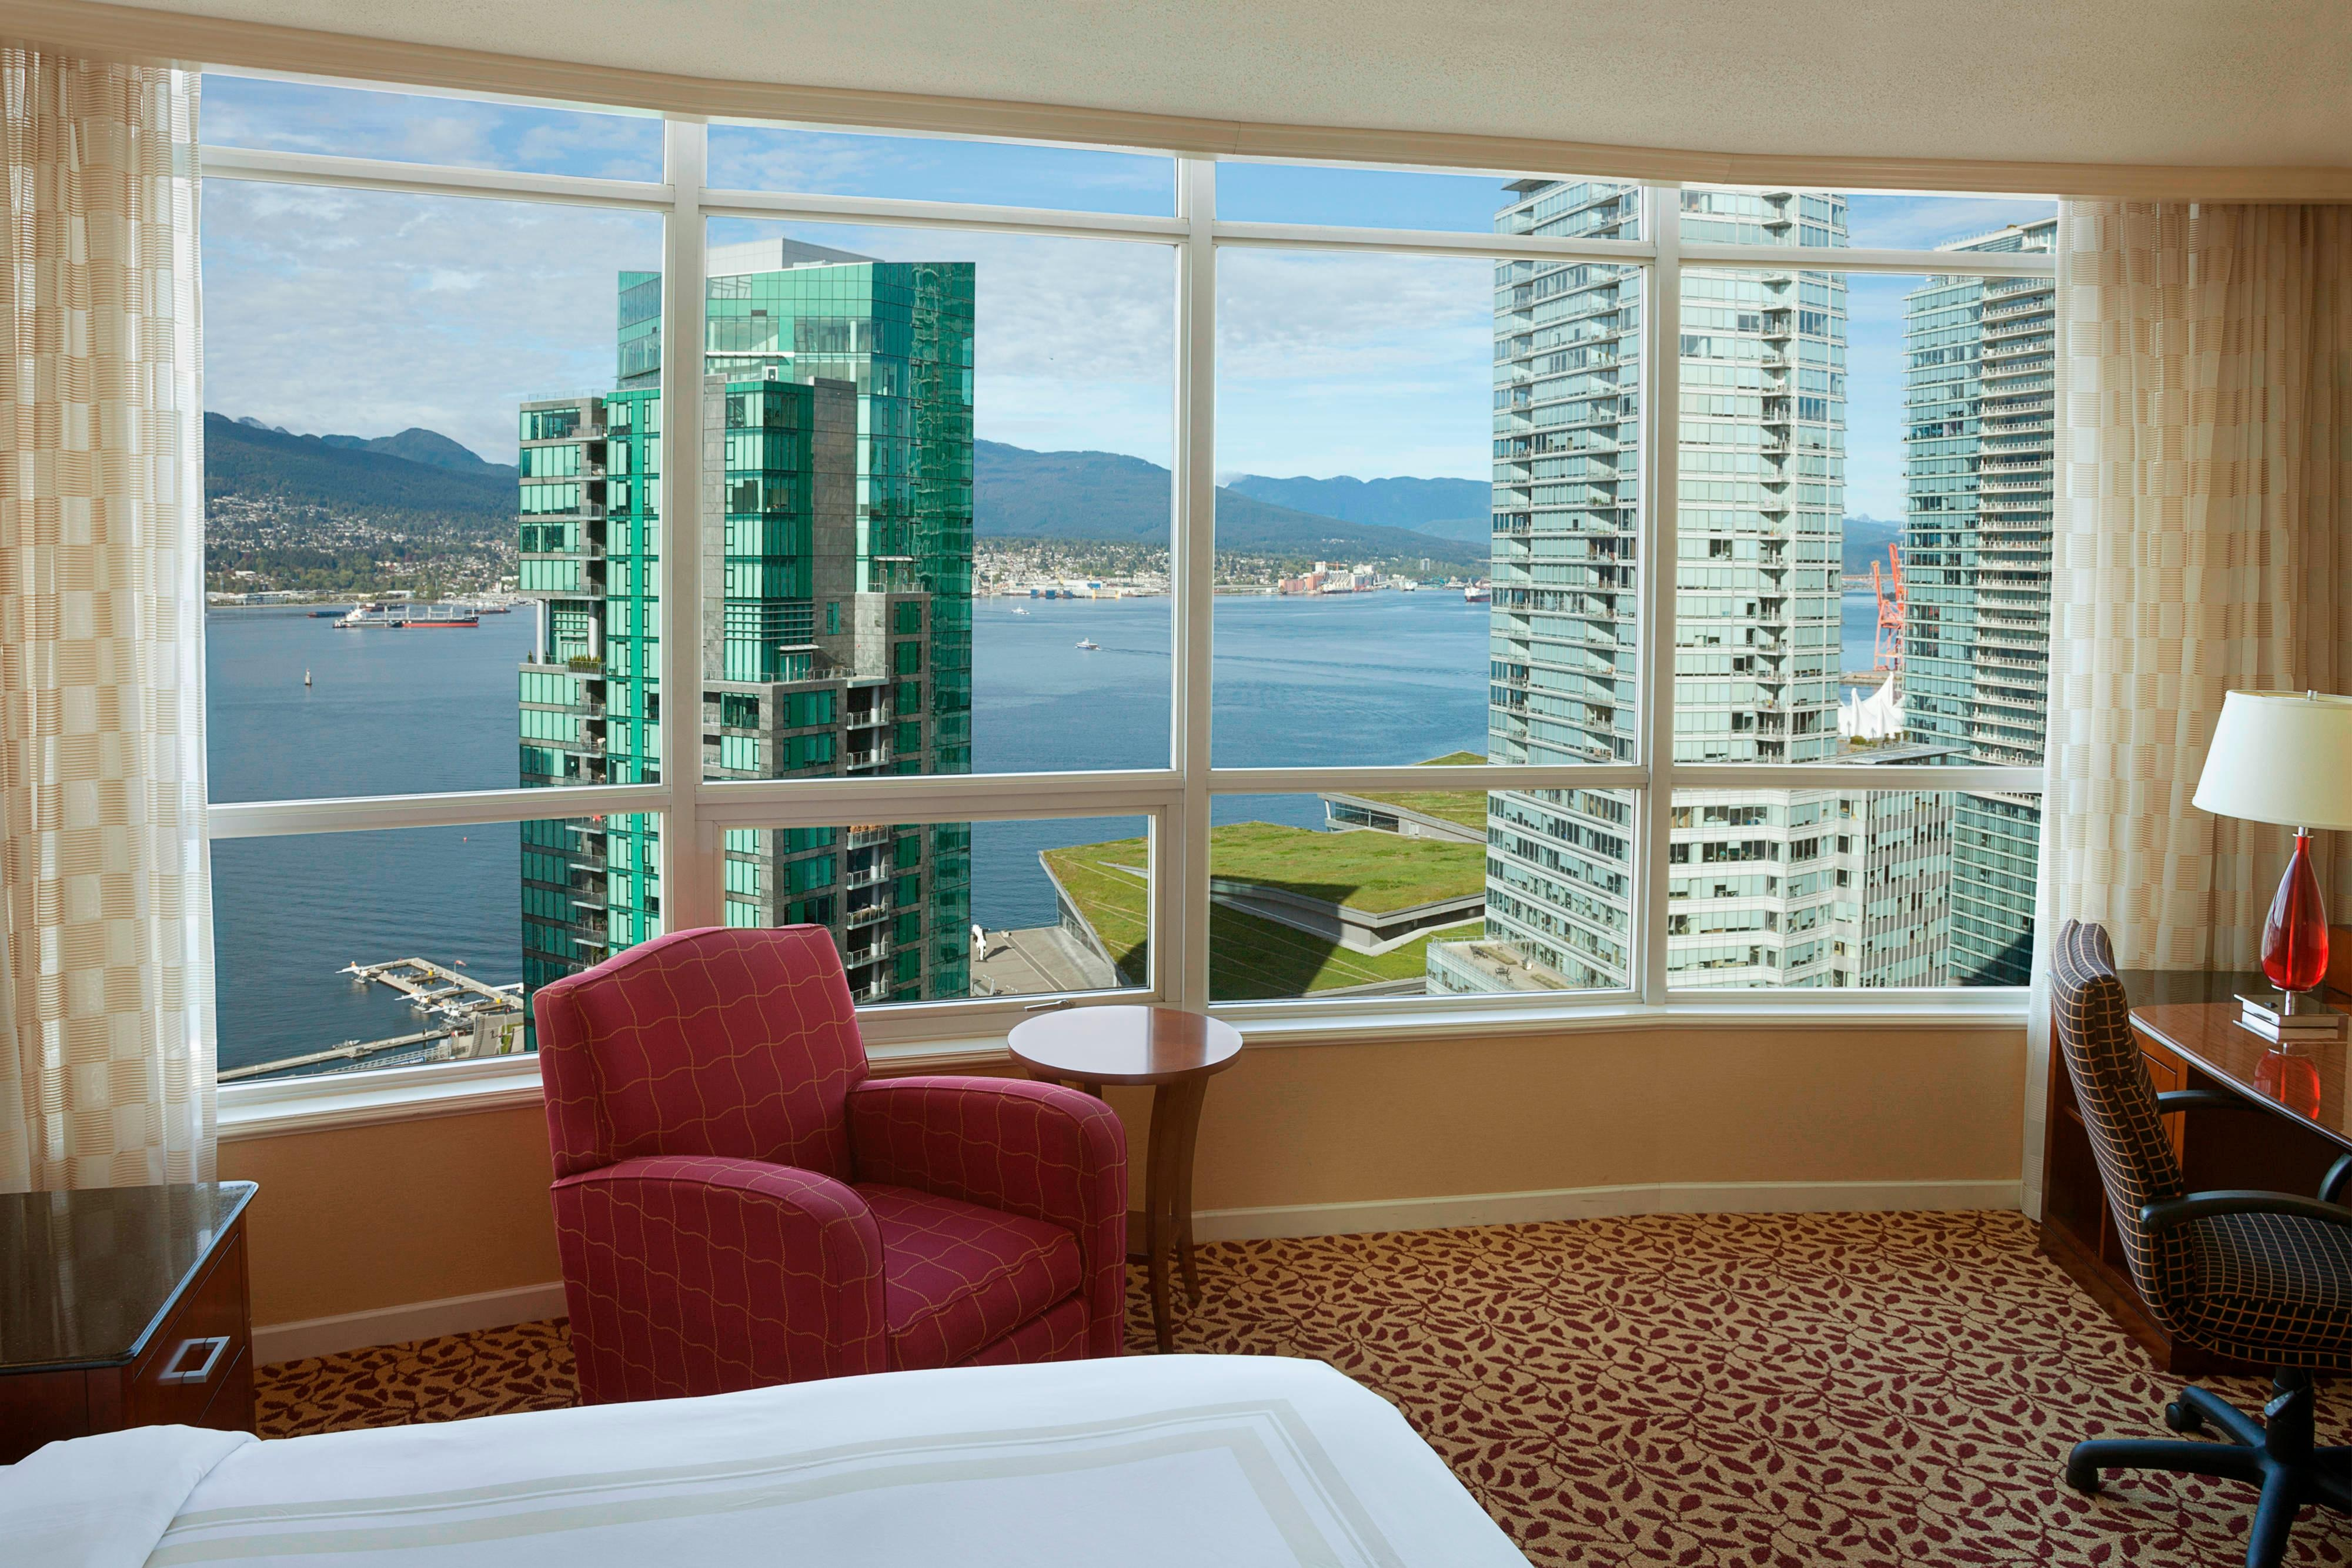 Vancouver Harbourview hotel